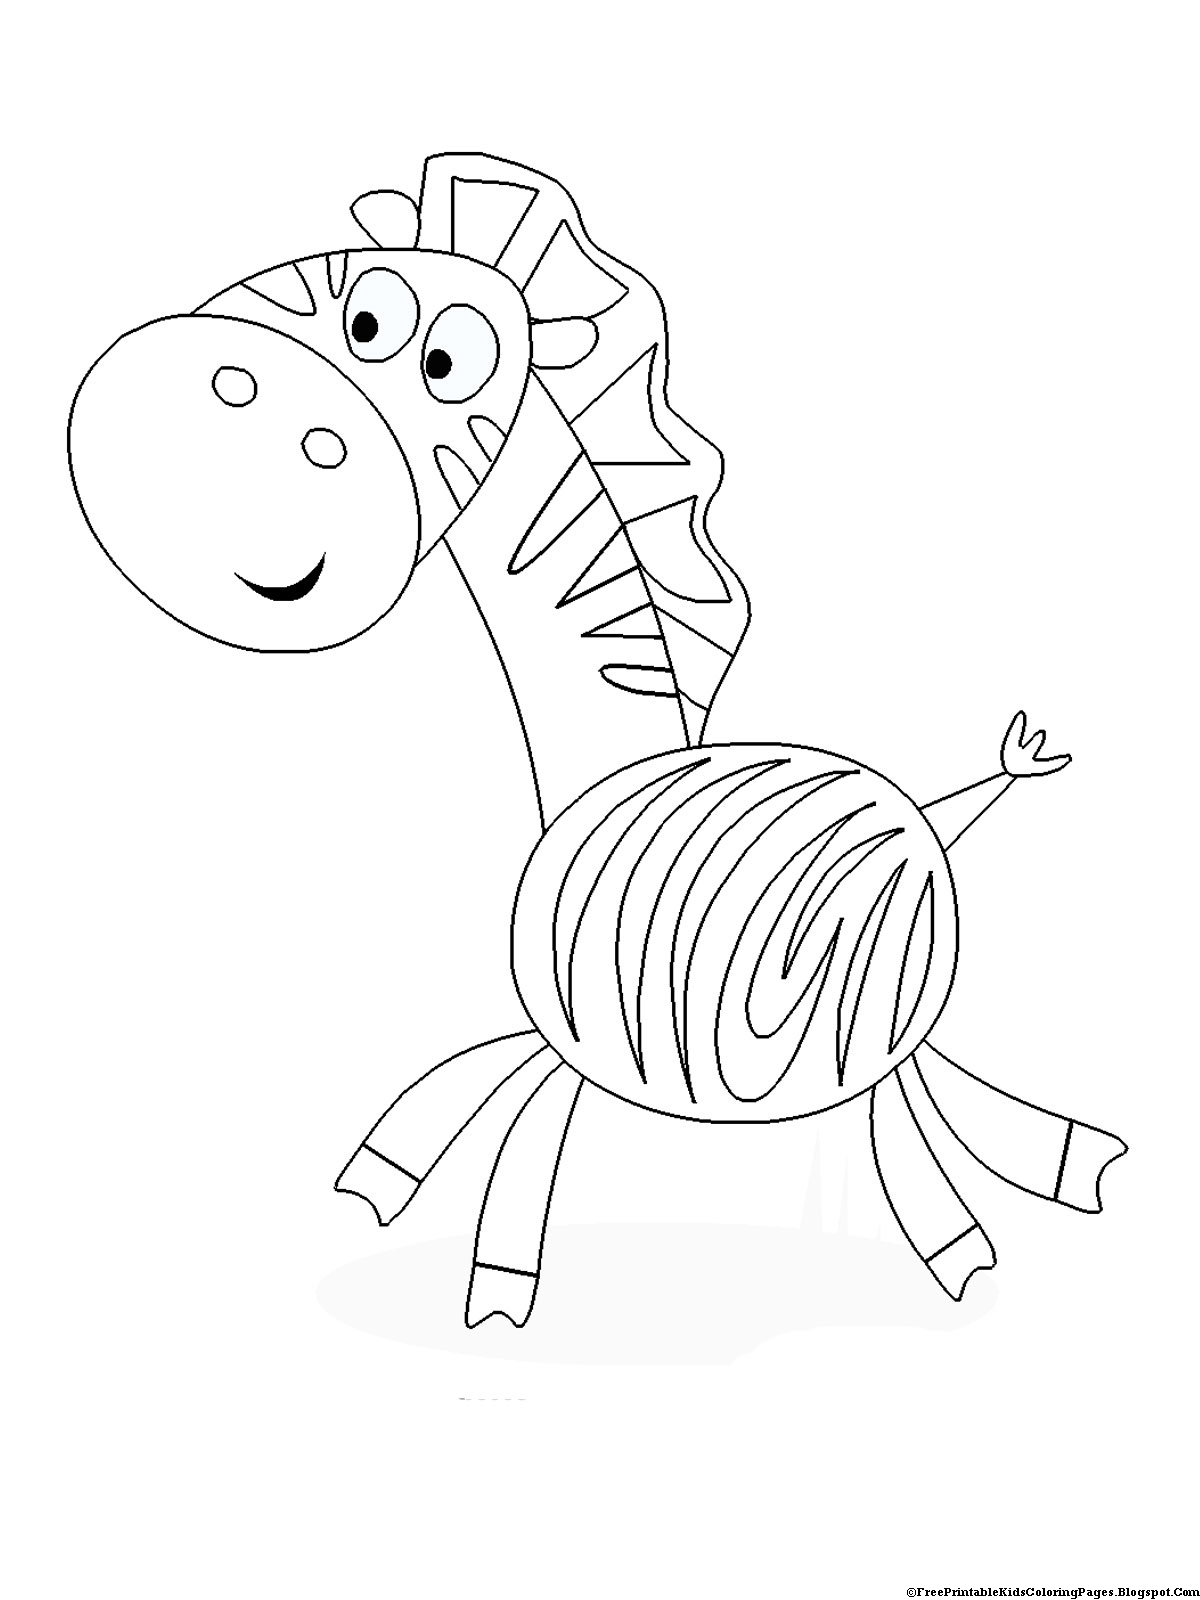 coloring pictures with color free printable tangled coloring pages for kids color coloring pictures with